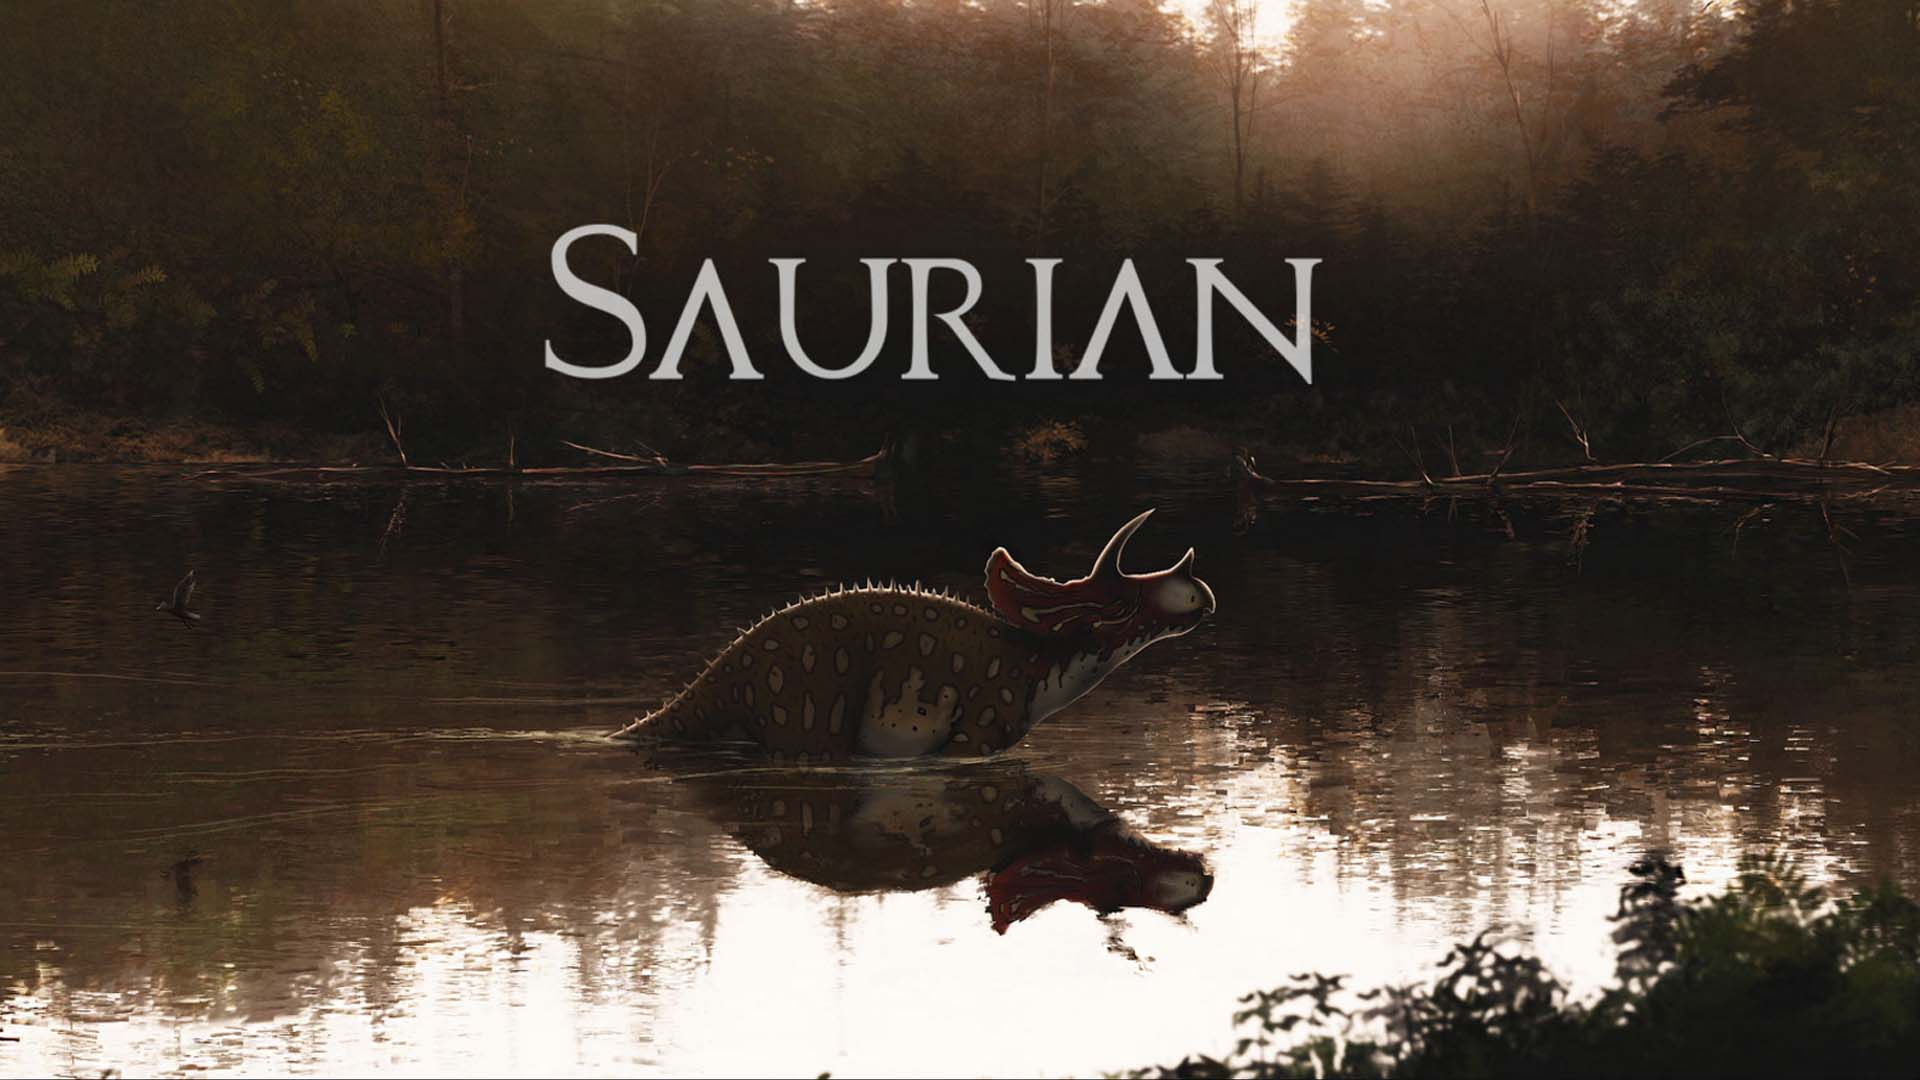 Saurian Wallpaper